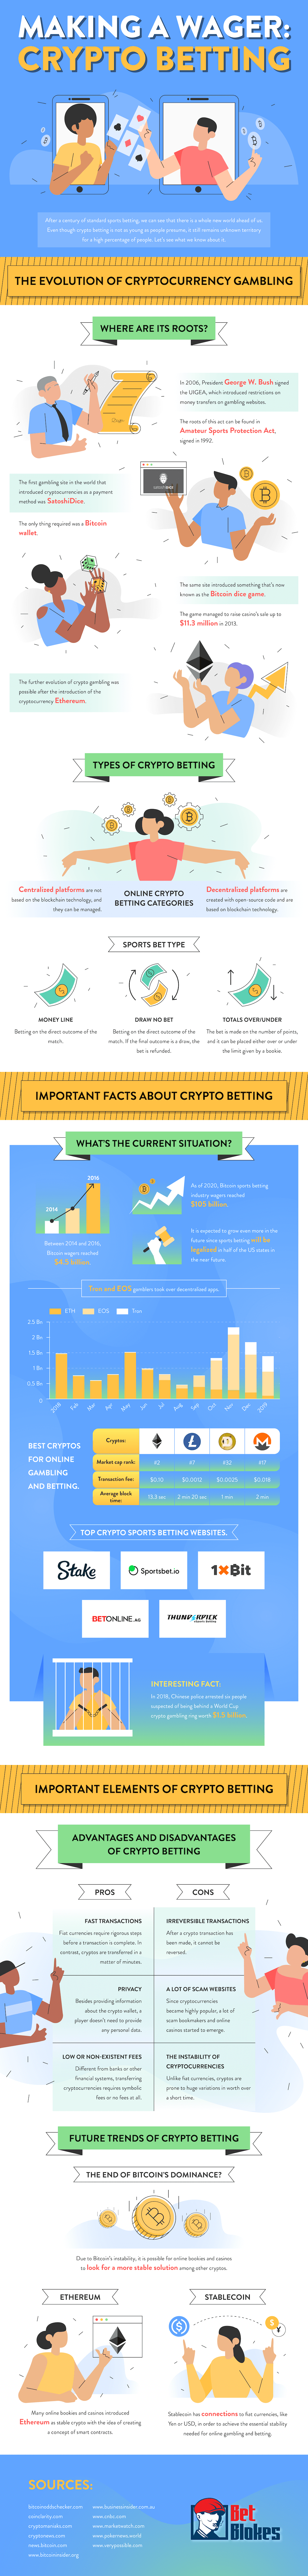 Making a Wager - Crypto Betting Infographic